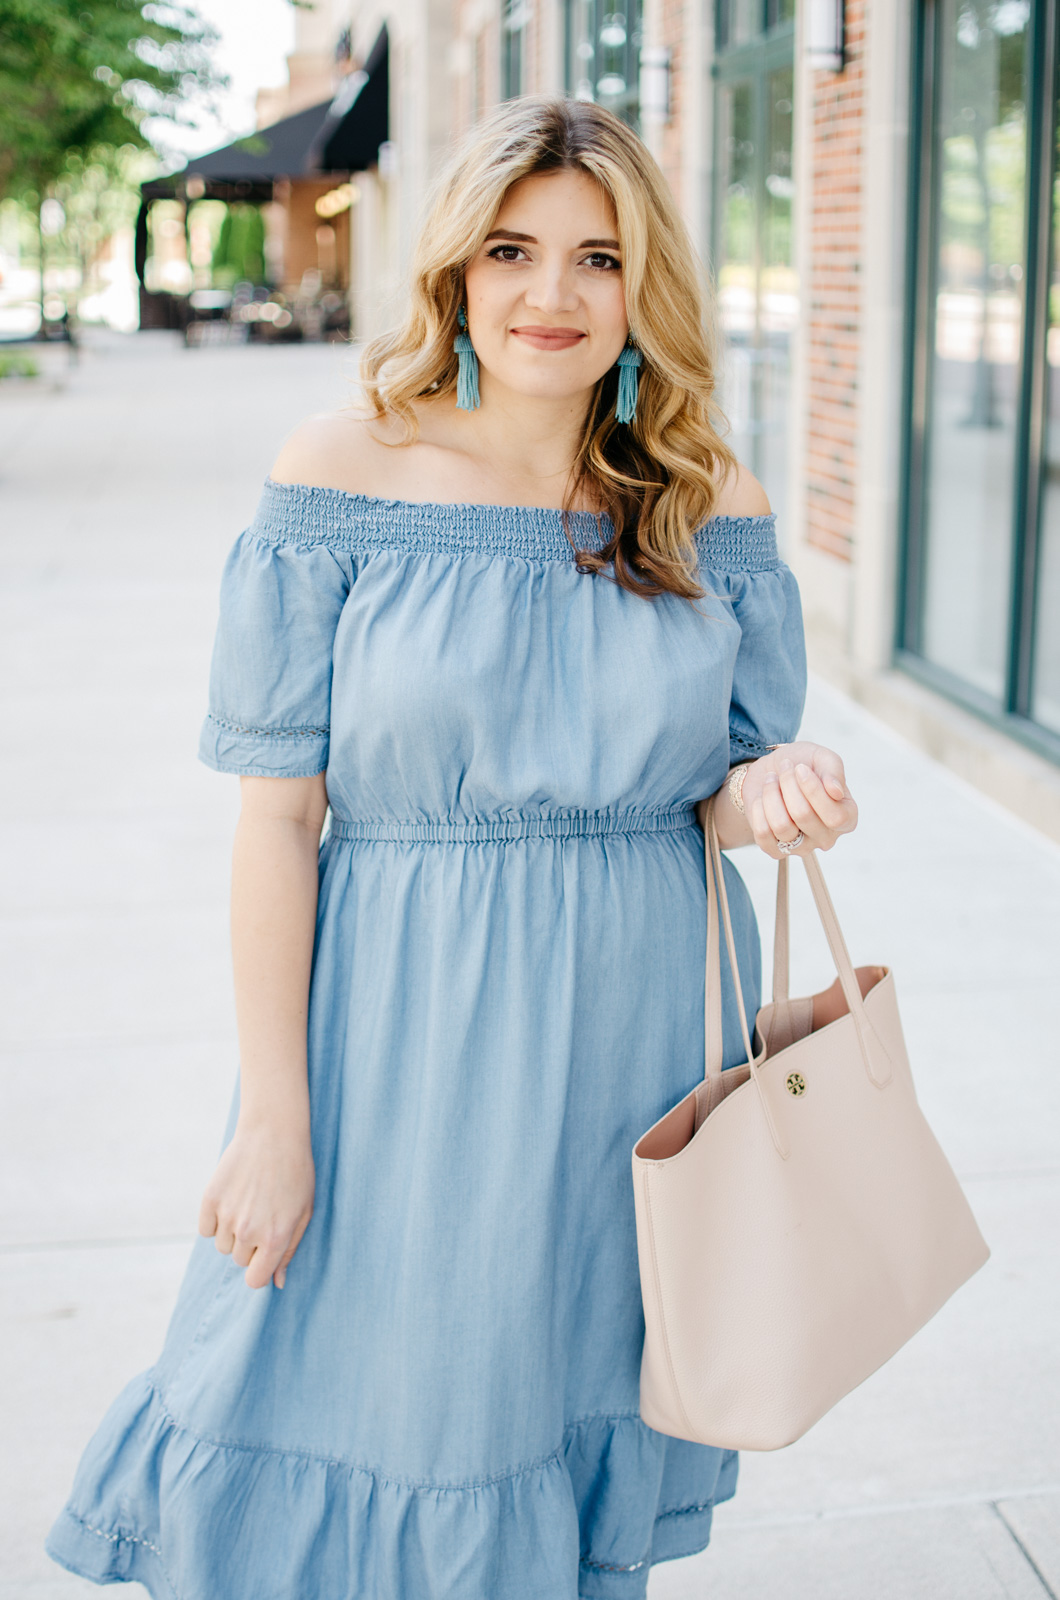 cute summer outfit - chambray off shoulder dress | bylaurenm.com